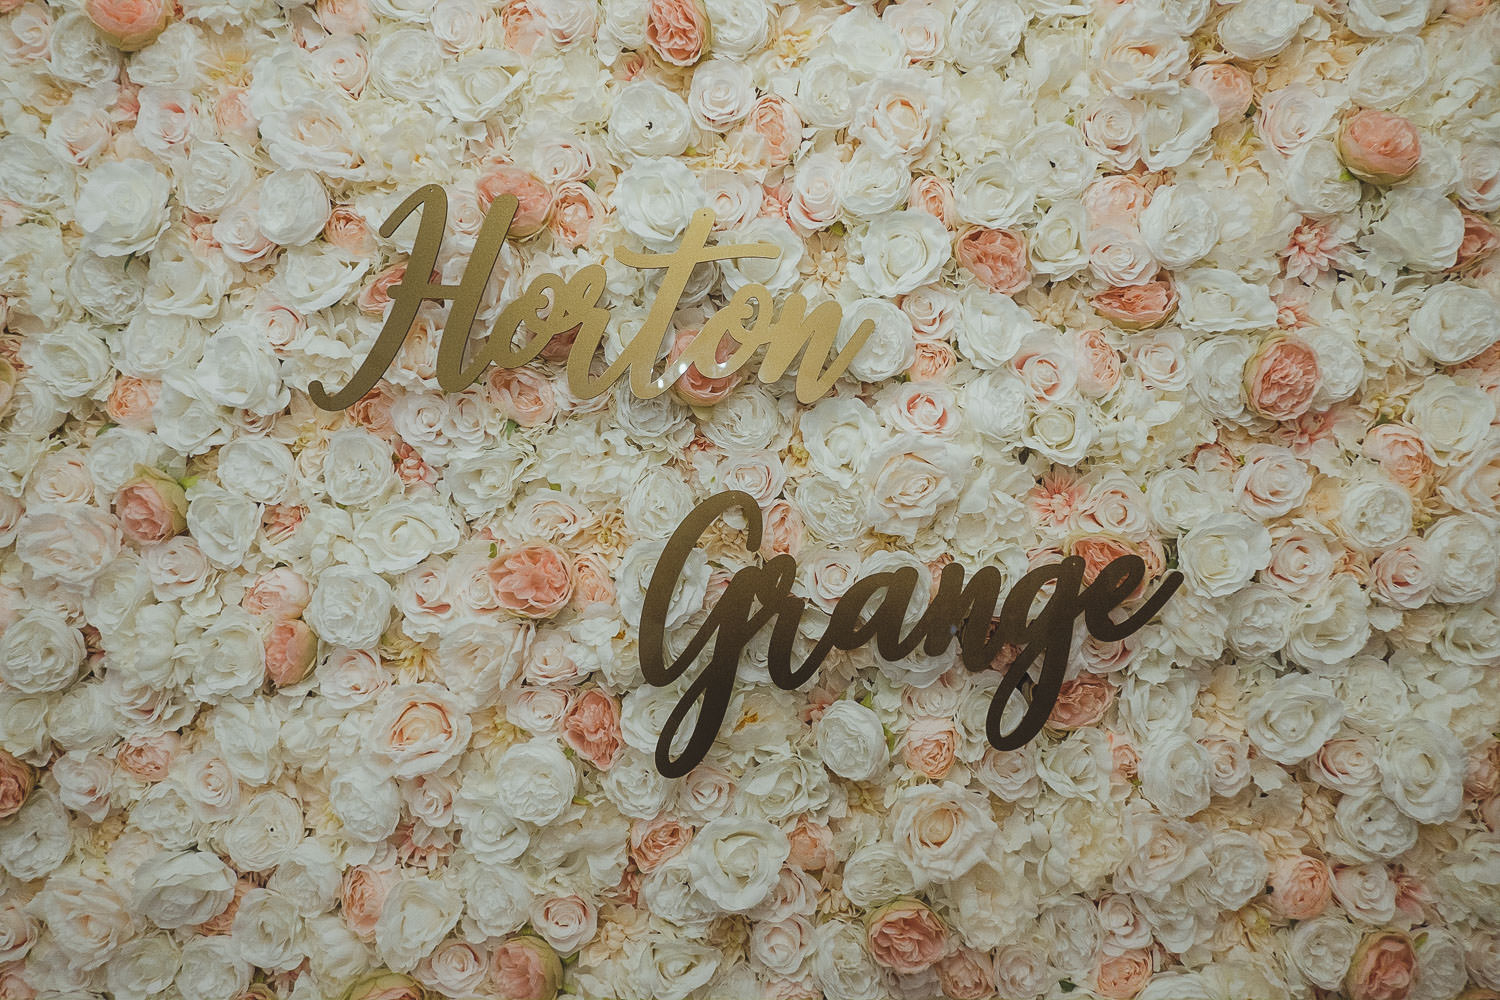 Horton Grange sign on flower wall